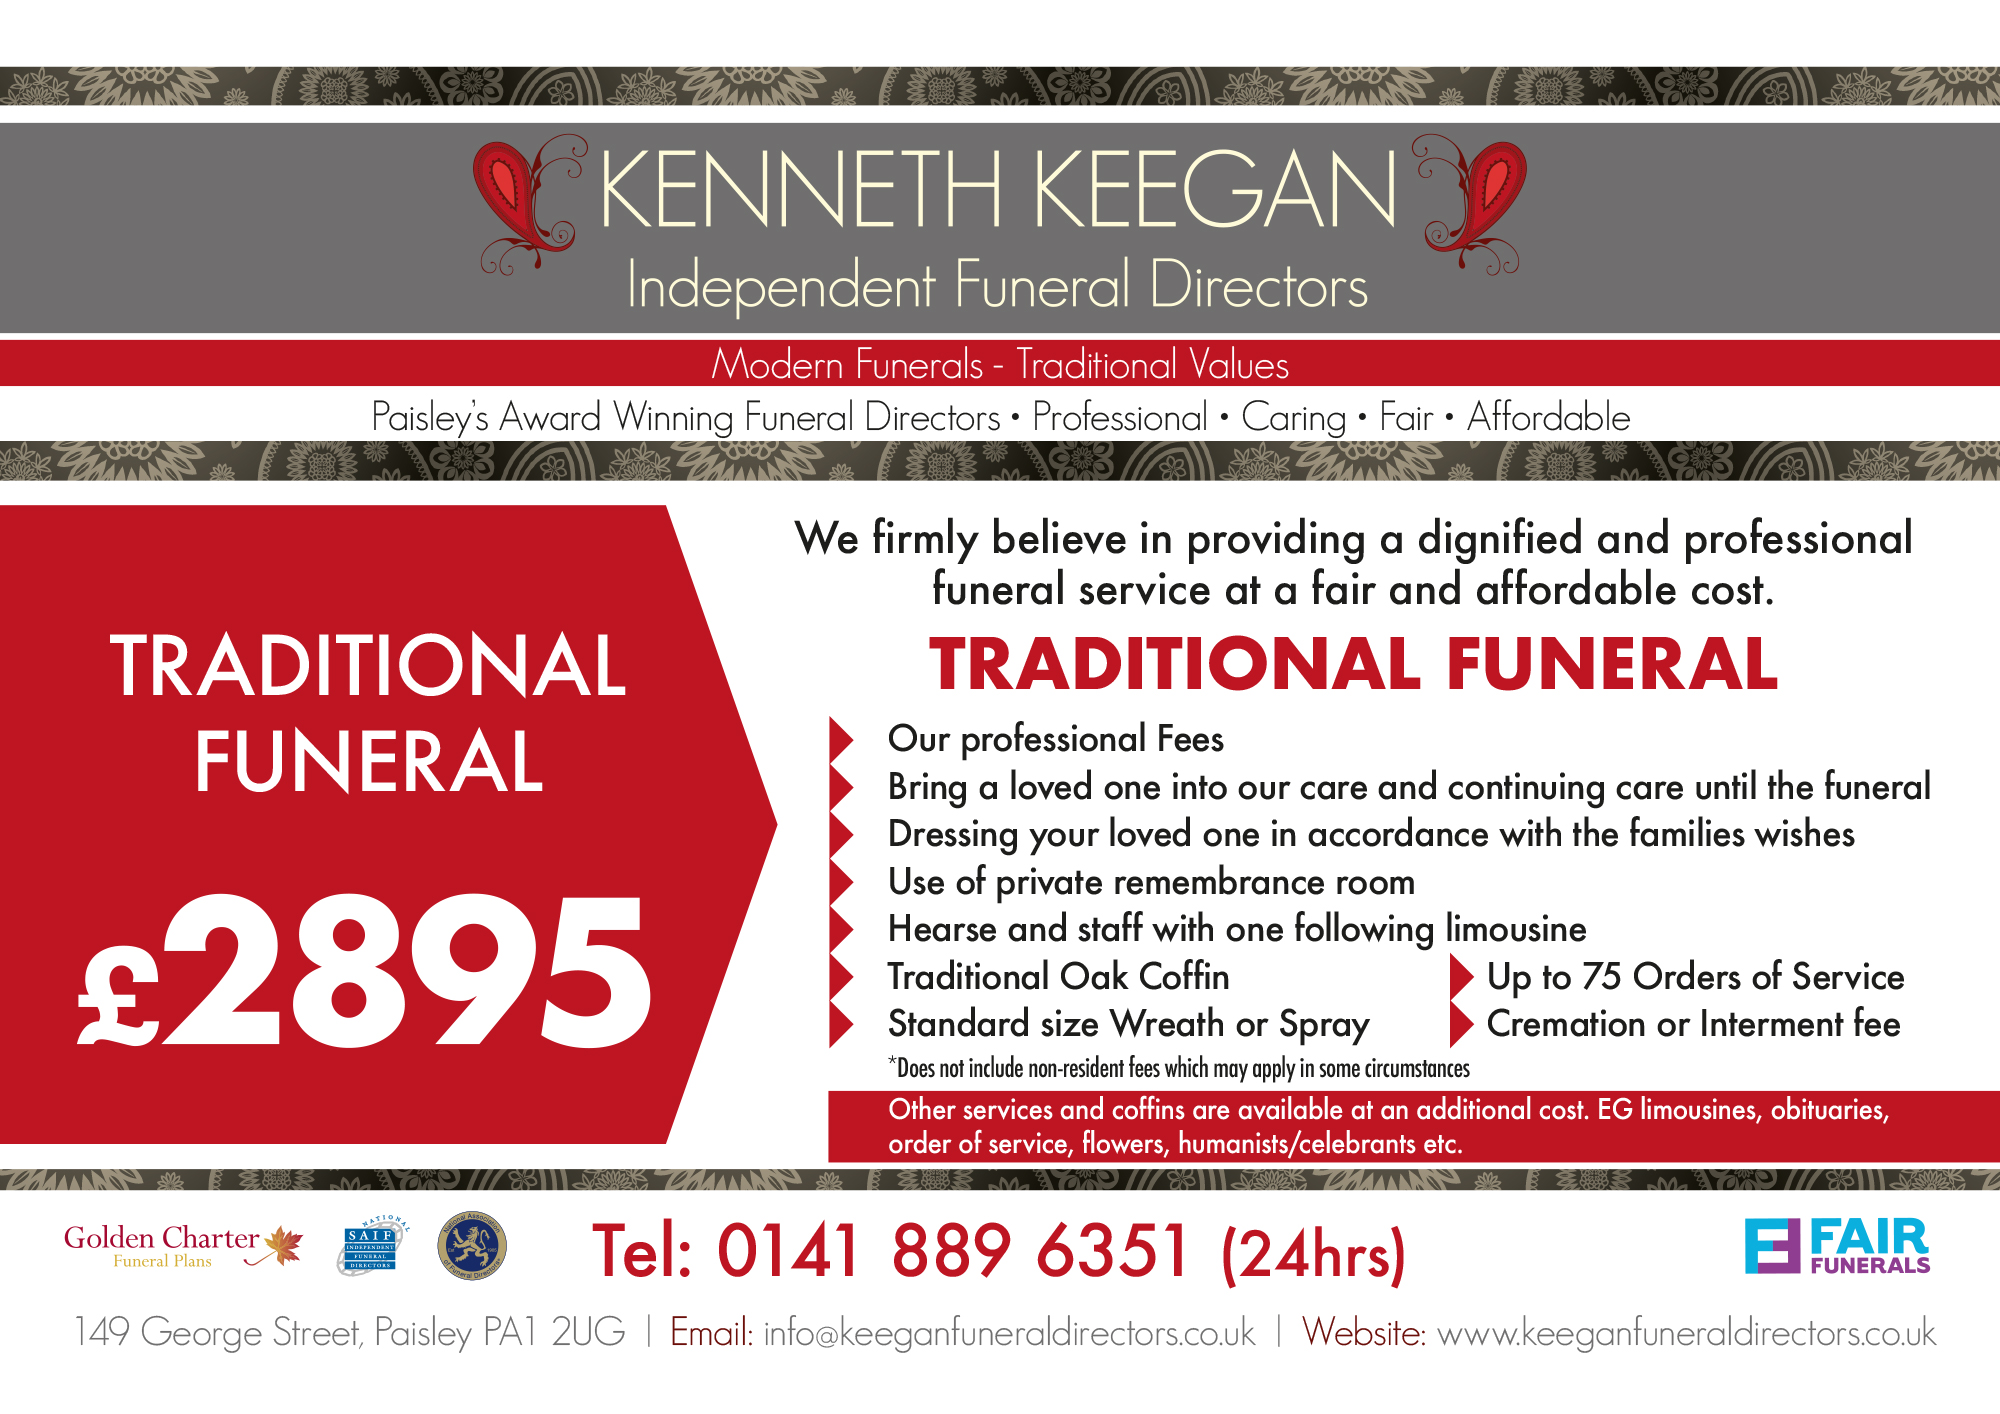 Kenneth-Keegan-Traditional-Funeral-A4L-15-06-18